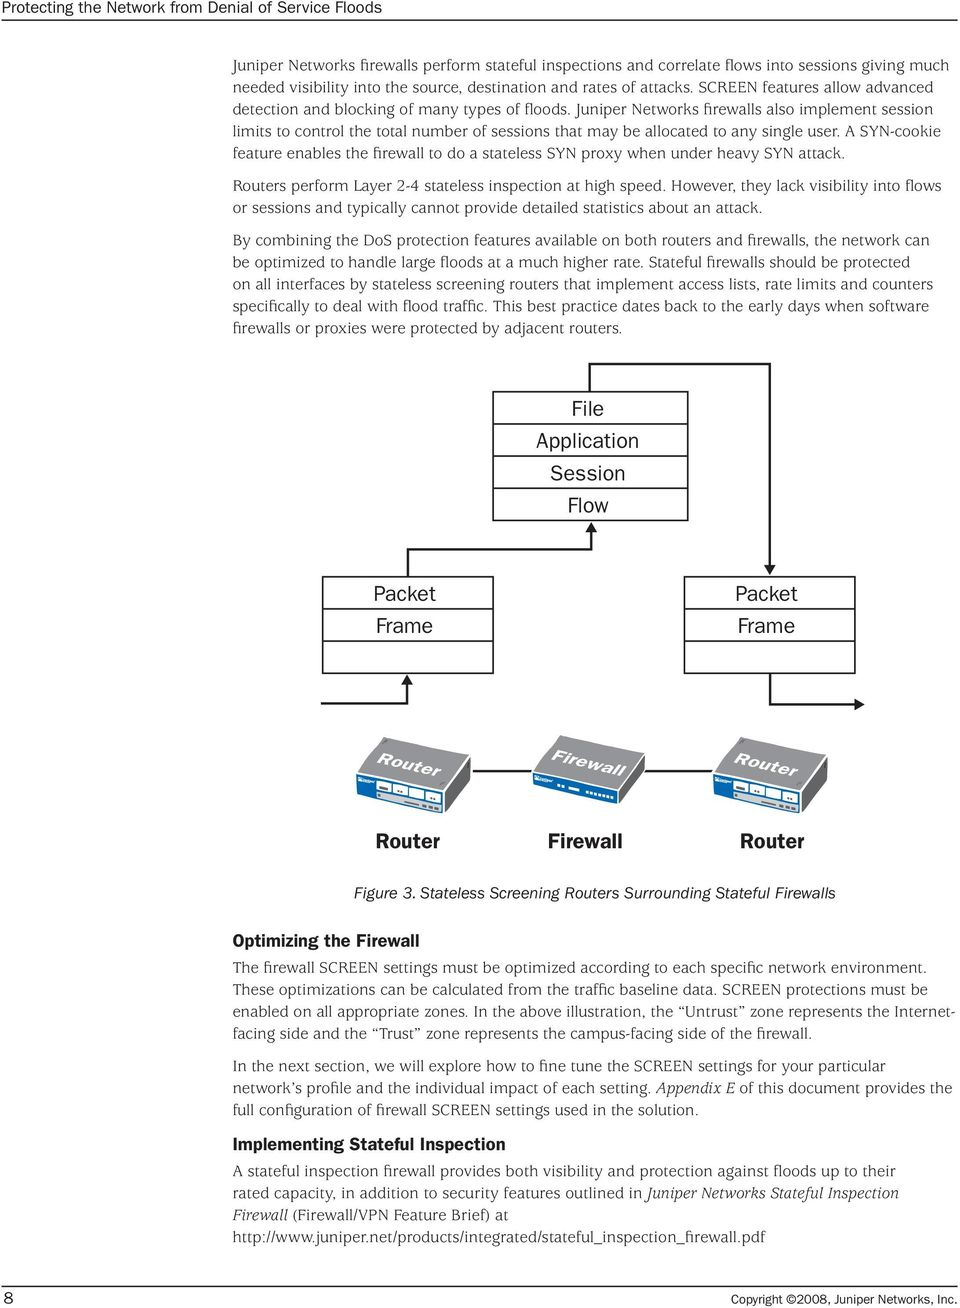 Juniper Networks firewalls also implement session limits to control the total number of sessions that may be allocated to any single user.